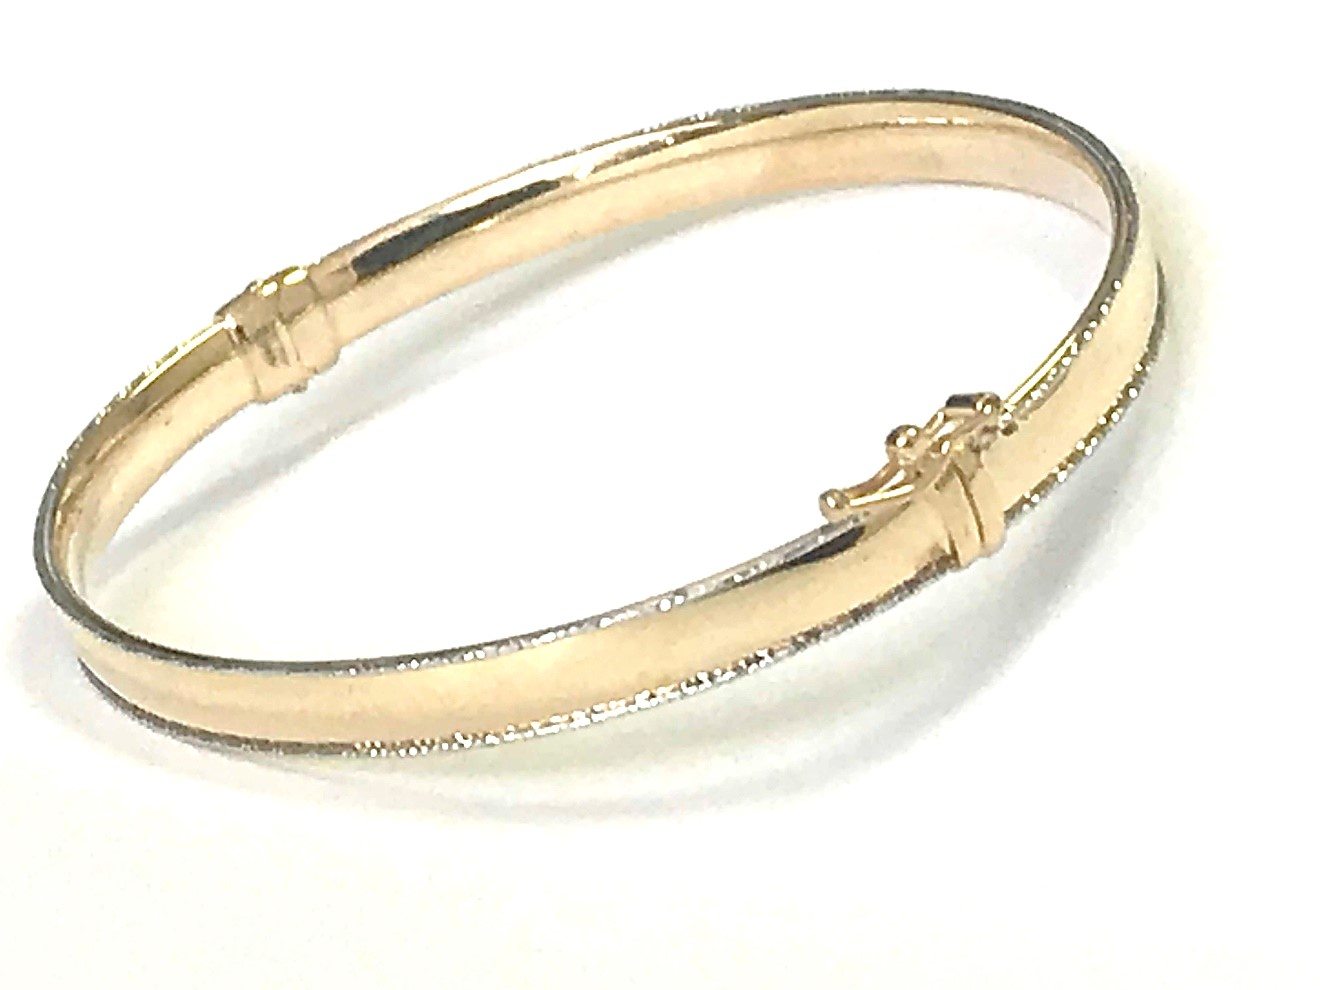 Bangle for woman - 10K 2 tone gold